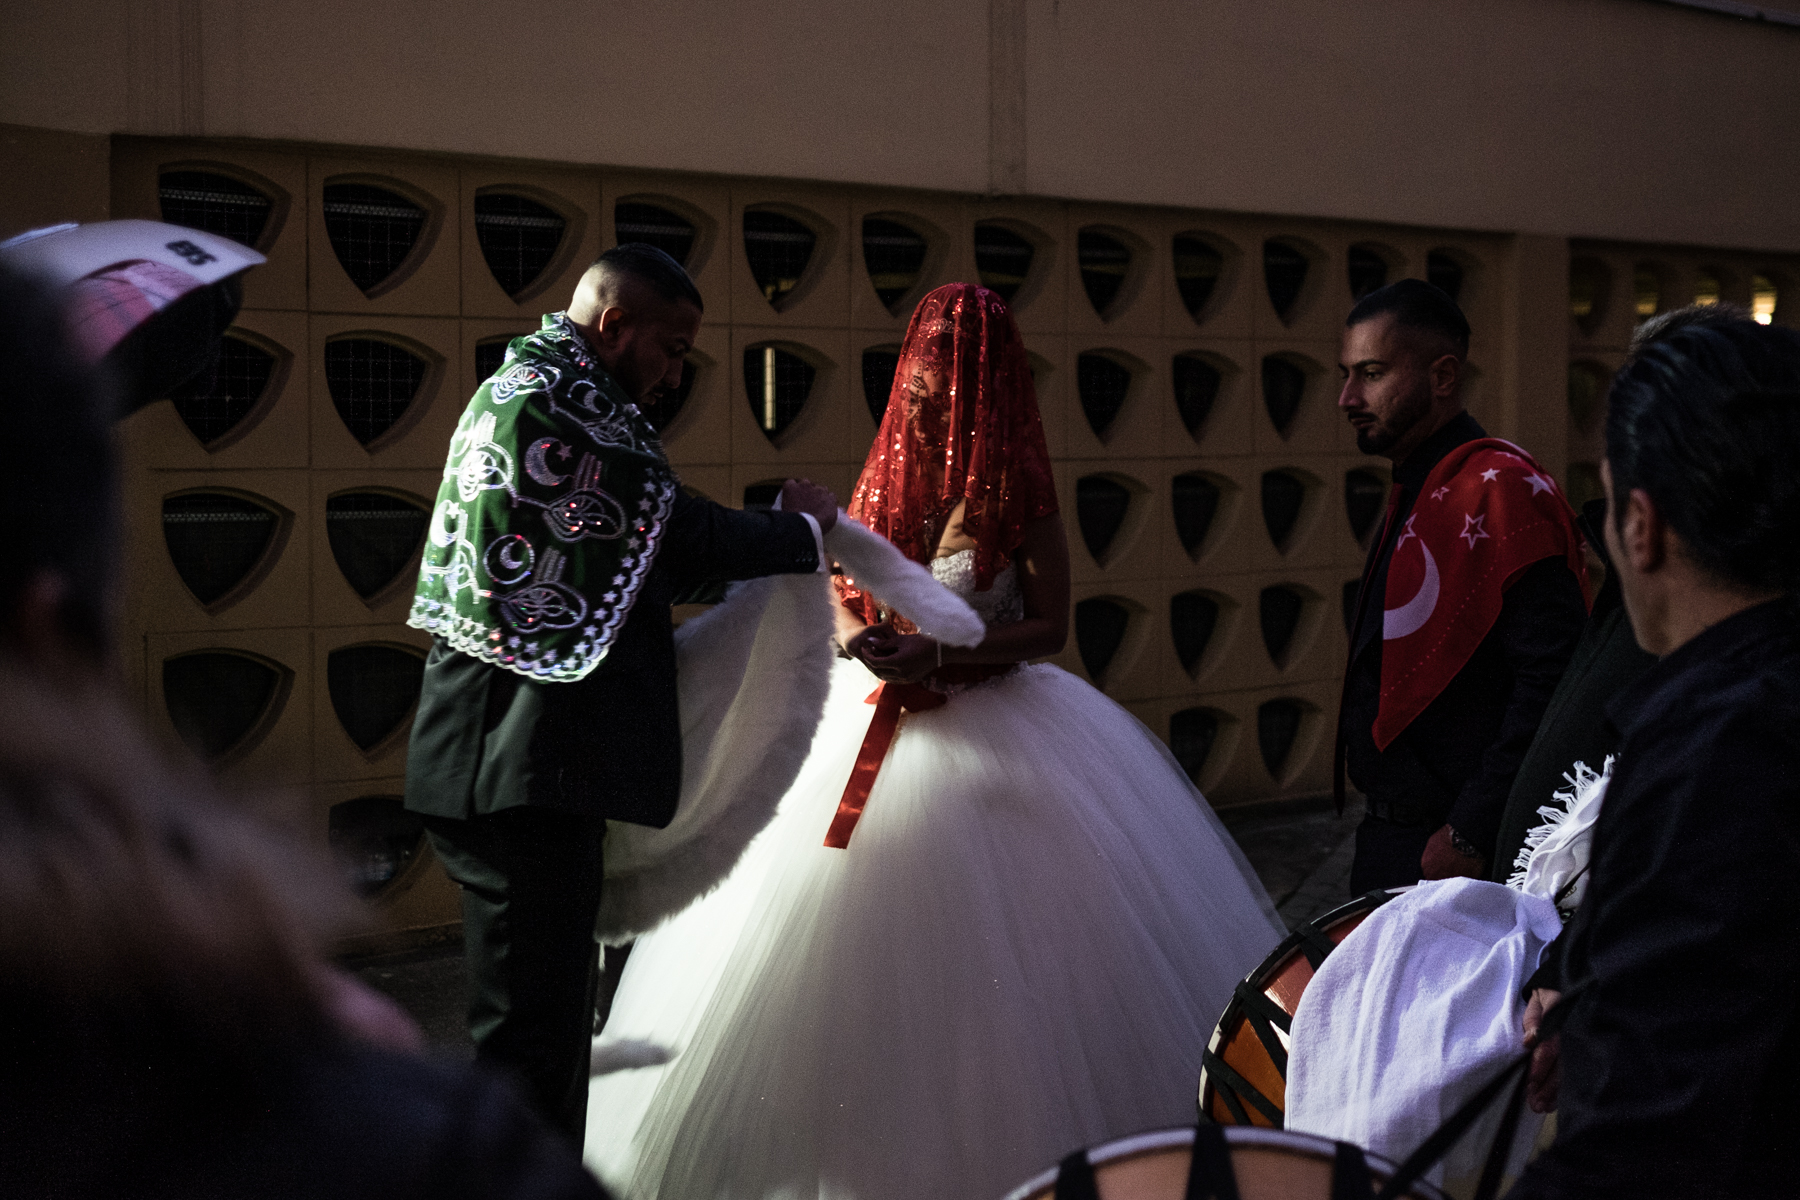 A Turkish wedding at downtown Offenbach